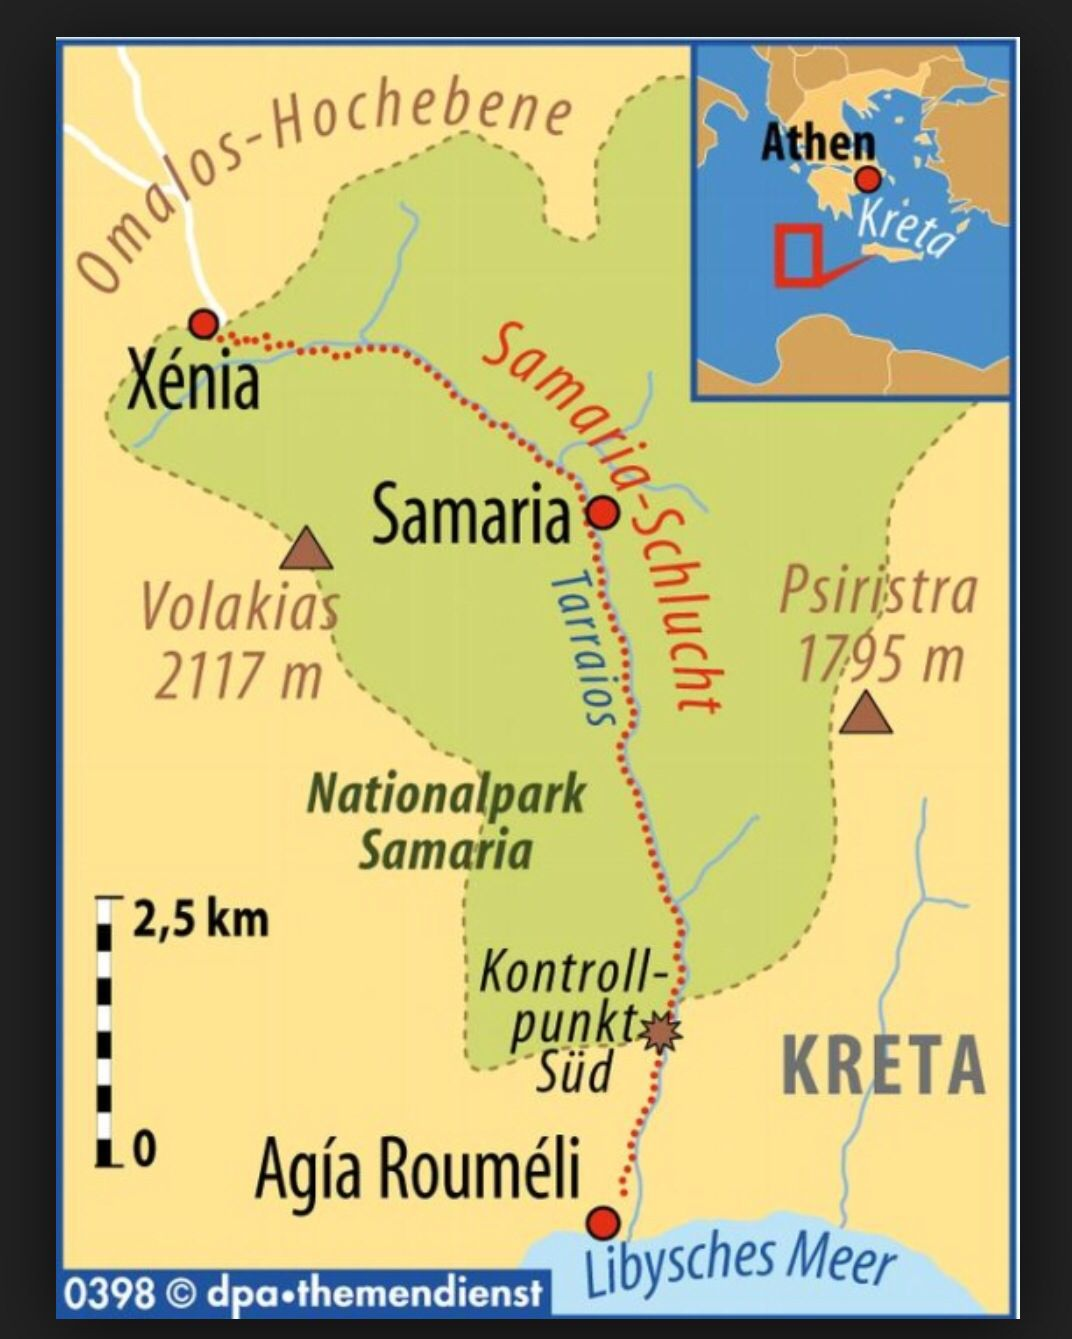 Samaria Map td garden map on west bank map, mount carmel map, kingdom of judah, israeli settlement, sinai peninsula map, the decapolis map, sea of galilee, iudaea province map, laodicean church map, judea and samaria, dead sea map, aelia capitolina map, philistia map, tell beit mirsim map, old testament holy land map, the whole state map, mount gerizim, damascus map, jordan river map, jezreel valley map, antonia fortress map, middle east map, tyre map, jerusalem map,